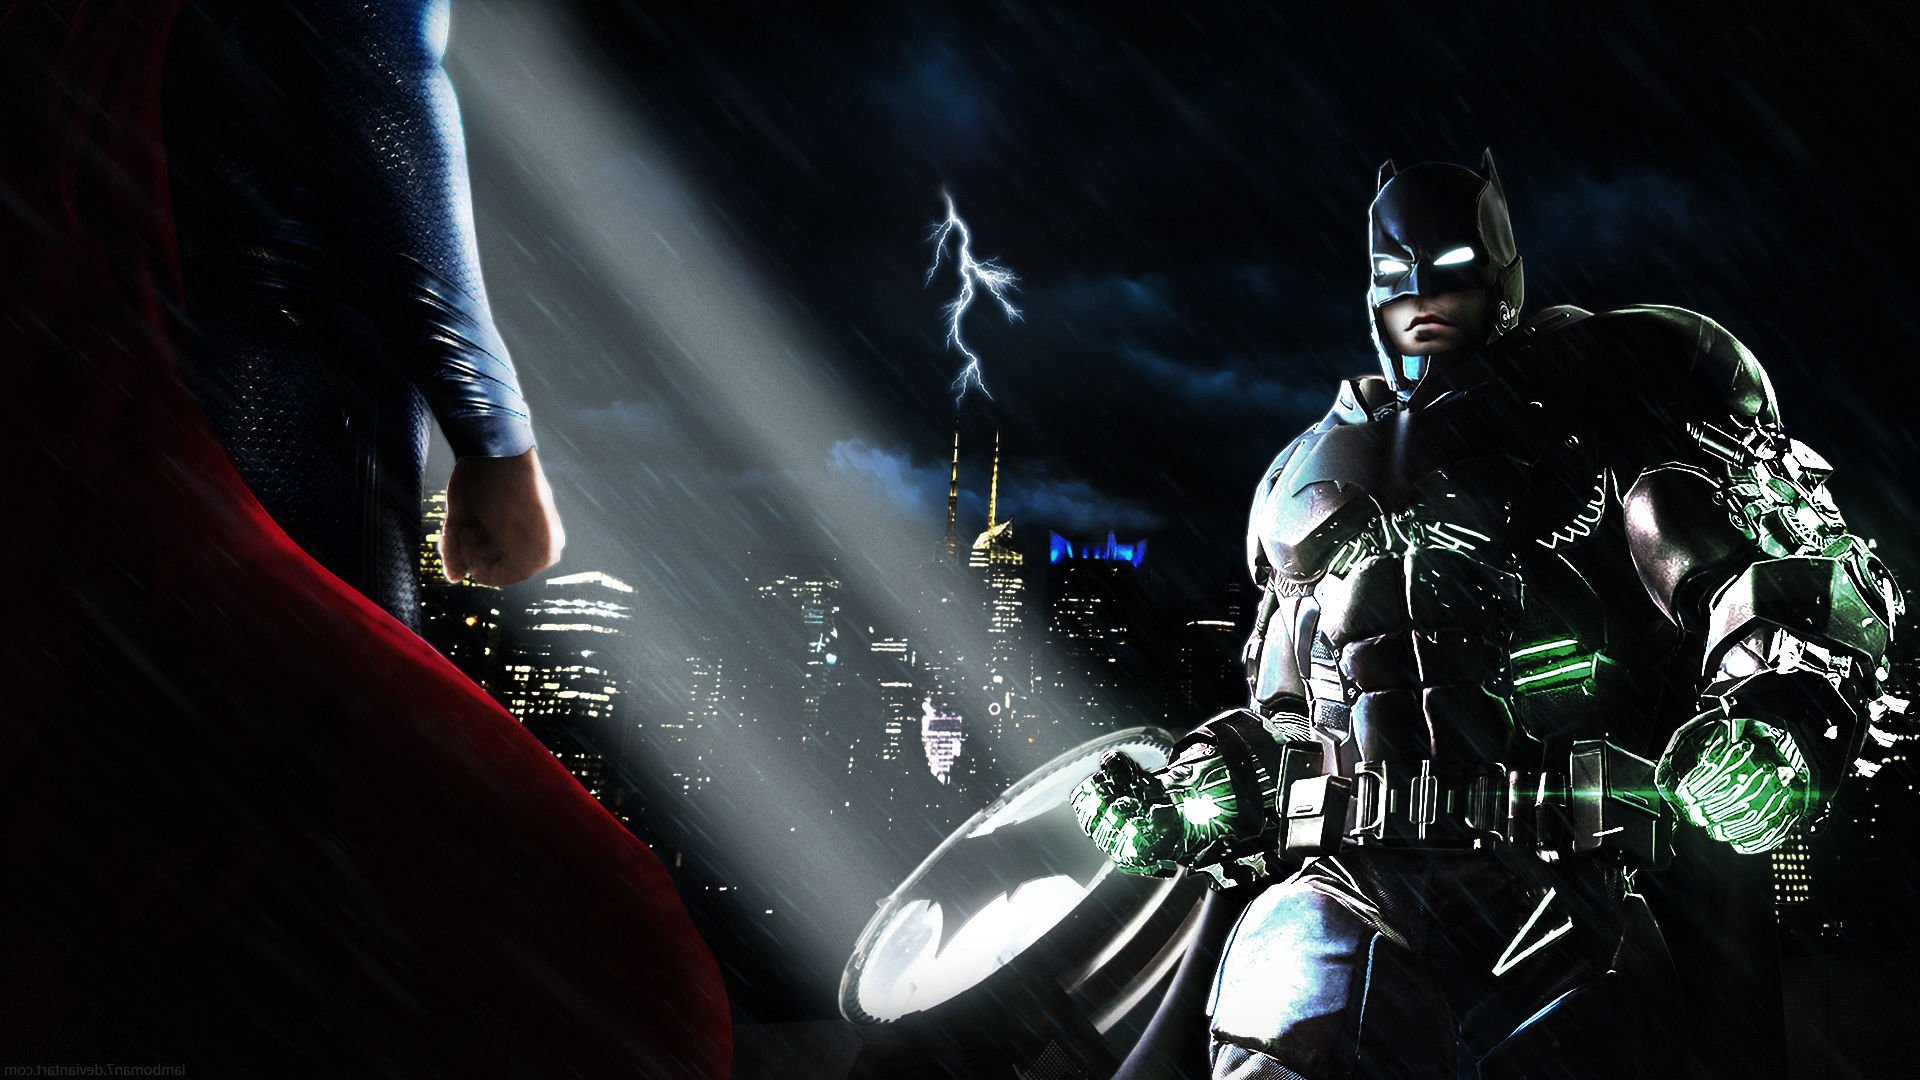 SUPERMAN adventure action batman superman dawn justice wallpaper 1920x1080